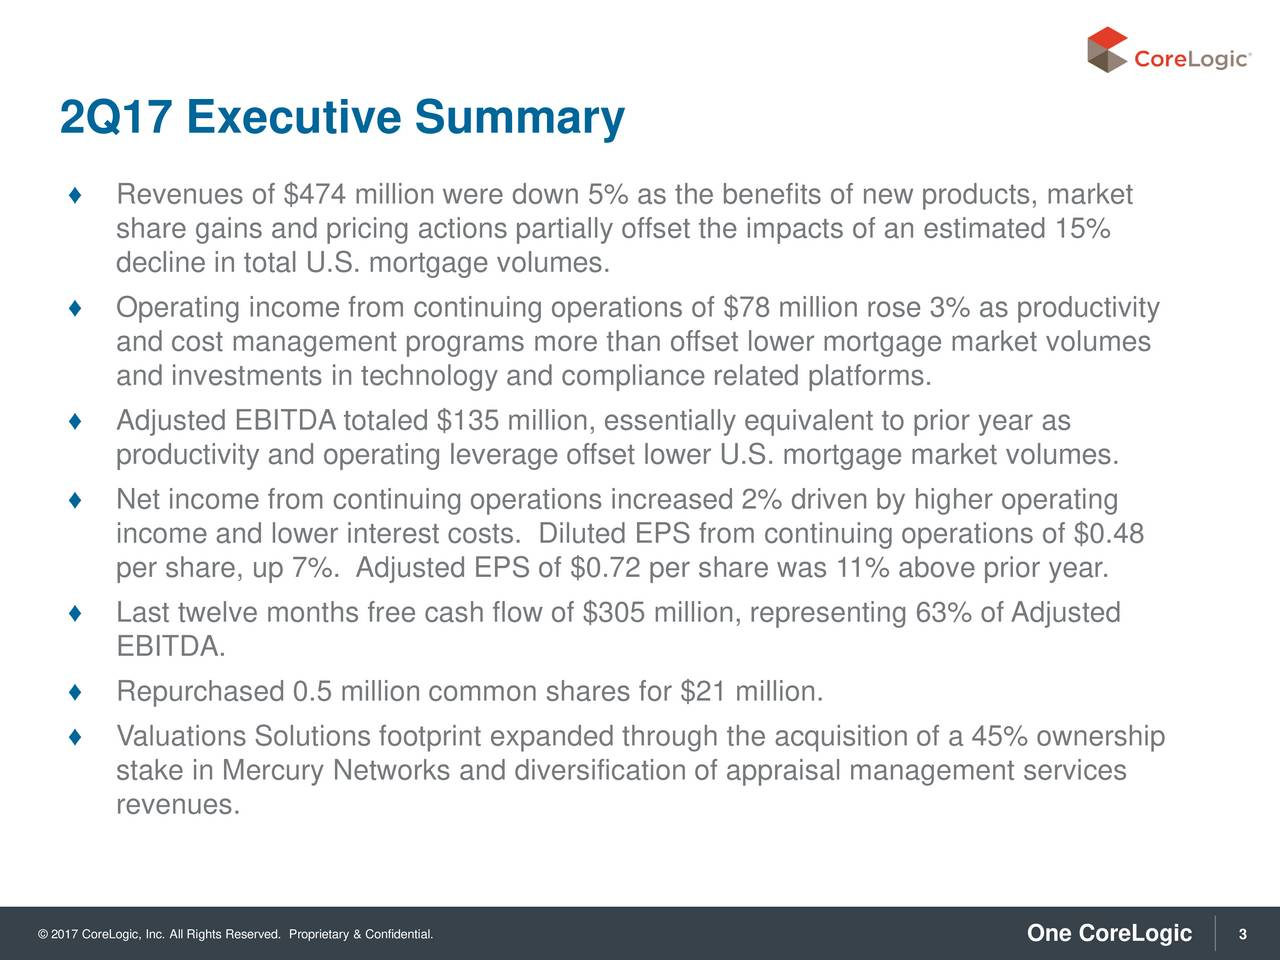 Revenues of $474 million were down 5% as the benefits of new products, market share gains and pricing actions partially offset the impacts of an estimated 15% decline in total U.S. mortgage volumes. Operating income from continuing operations of $78 million rose 3% as productivity and cost management programs more than offset lower mortgage market volumes and investments in technology and compliance related platforms. Adjusted EBITDA totaled $135 million, essentially equivalent to prior year as productivity and operating leverage offset lower U.S. mortgage market volumes. Net income from continuing operations increased 2% driven by higher operating income and lower interest costs. Diluted EPS from continuing operations of $0.48 per share, up 7%. Adjusted EPS of $0.72 per share was 11% above prior year. Last twelve months free cash flow of $305 million, representing 63% of Adjusted EBITDA. Repurchased 0.5 million common shares for $21 million. Valuations Solutions footprint expanded through the acquisition of a 45% ownership stake in Mercury Networks and diversification of appraisal management services revenues. 2017 CoreLogic, Inc. All Rights Reserved. Proprietary & Confidential. One CoreLogic 3